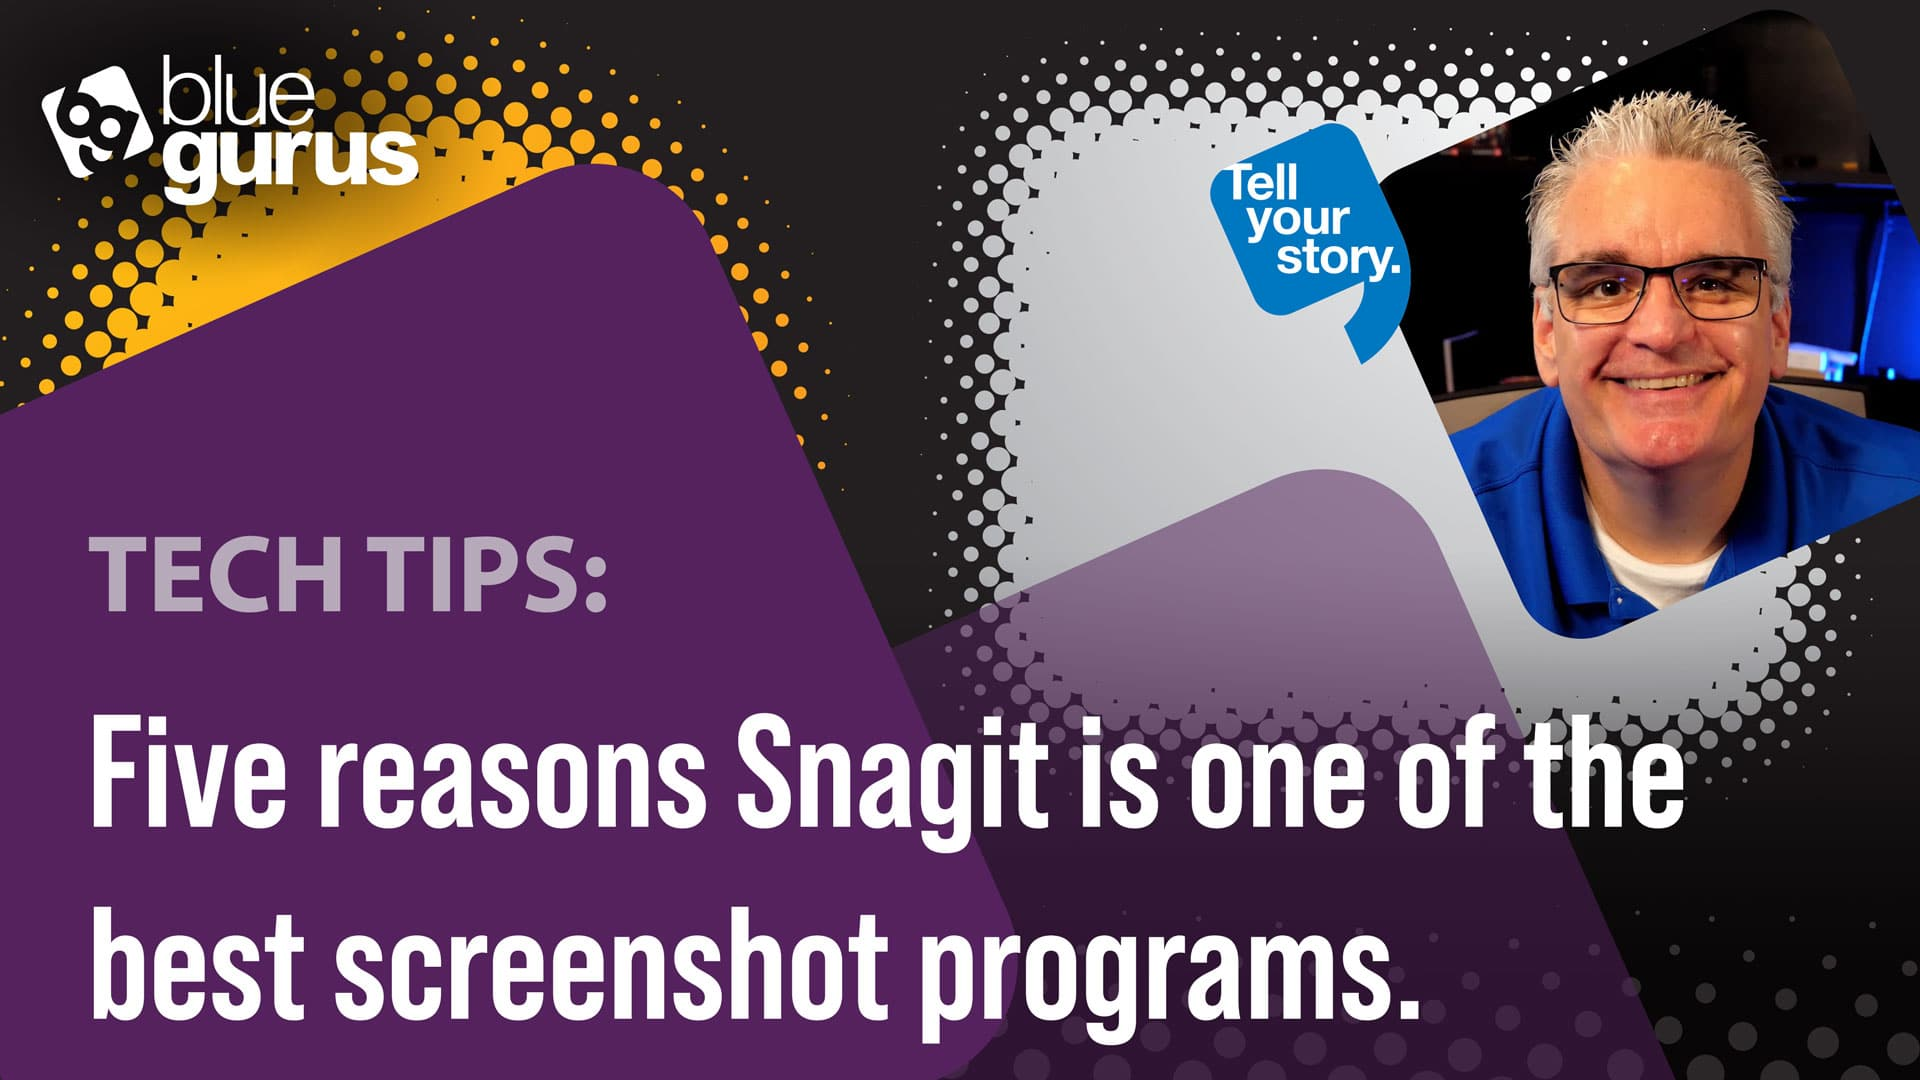 Tech Tip: 5 reasons Snagit is on of the best screenshot programs.